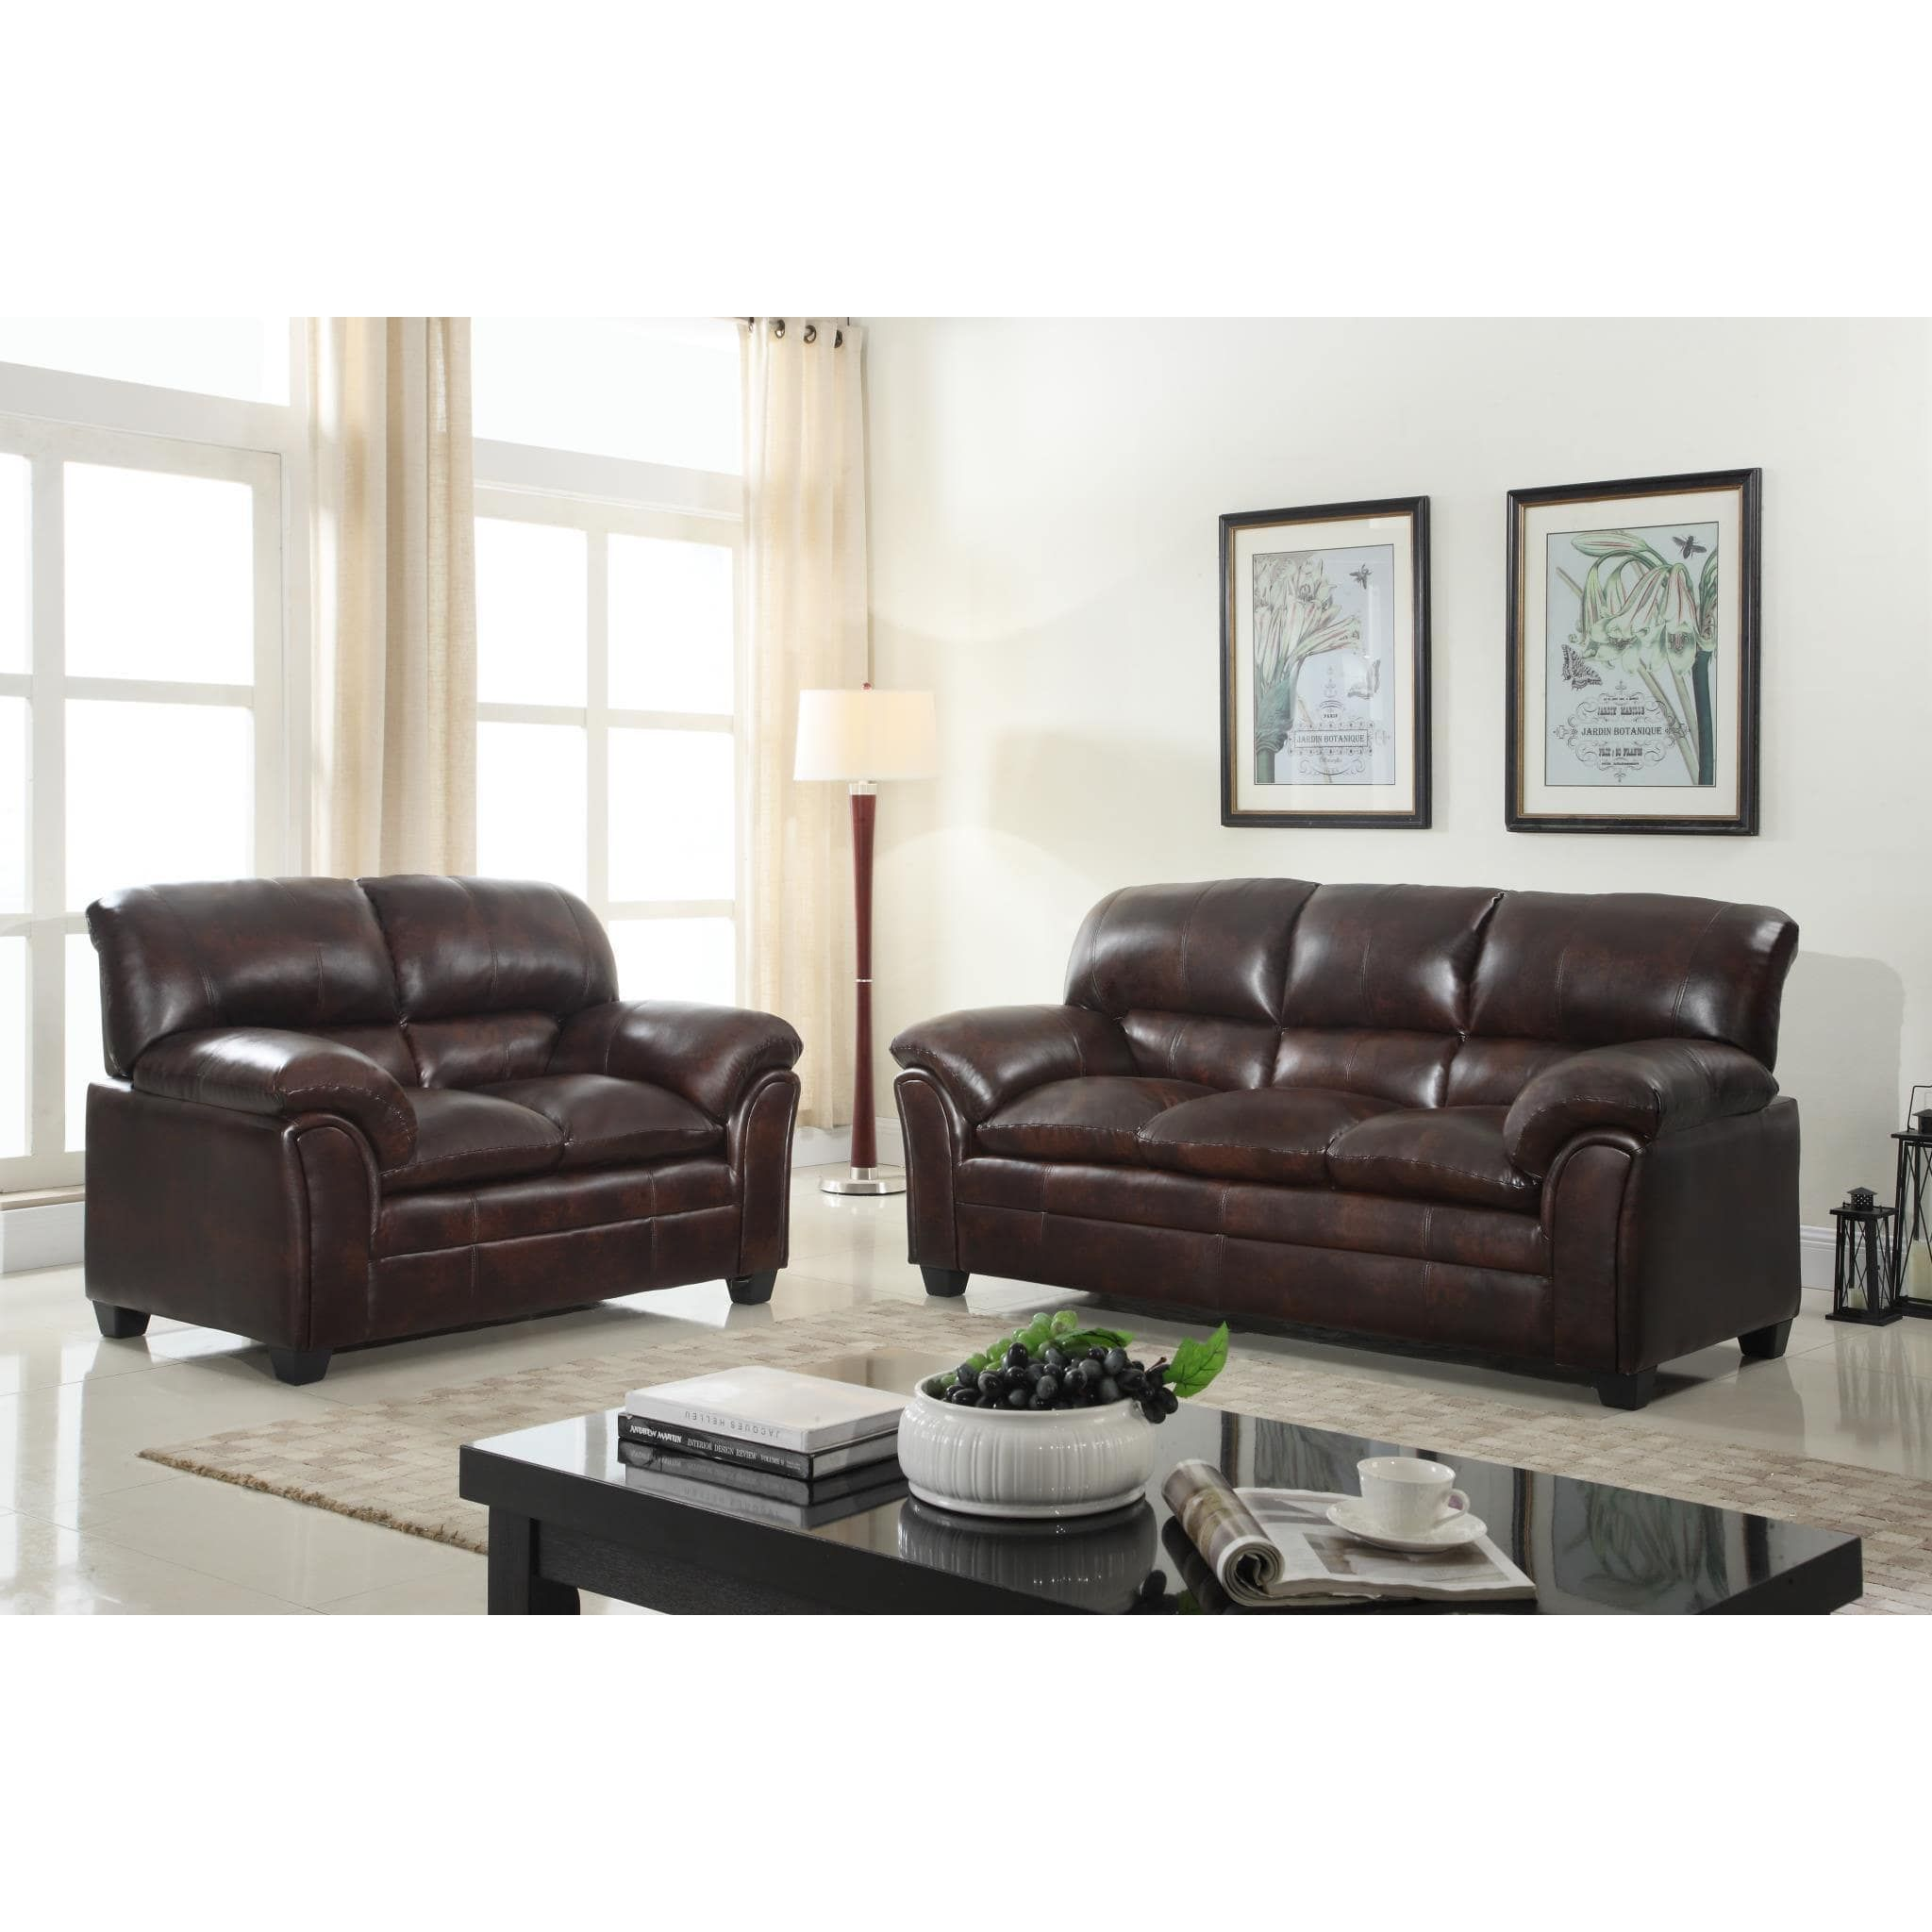 Faux Leather Sofa and Loveseat Living Room Furniture Set (Brown ...